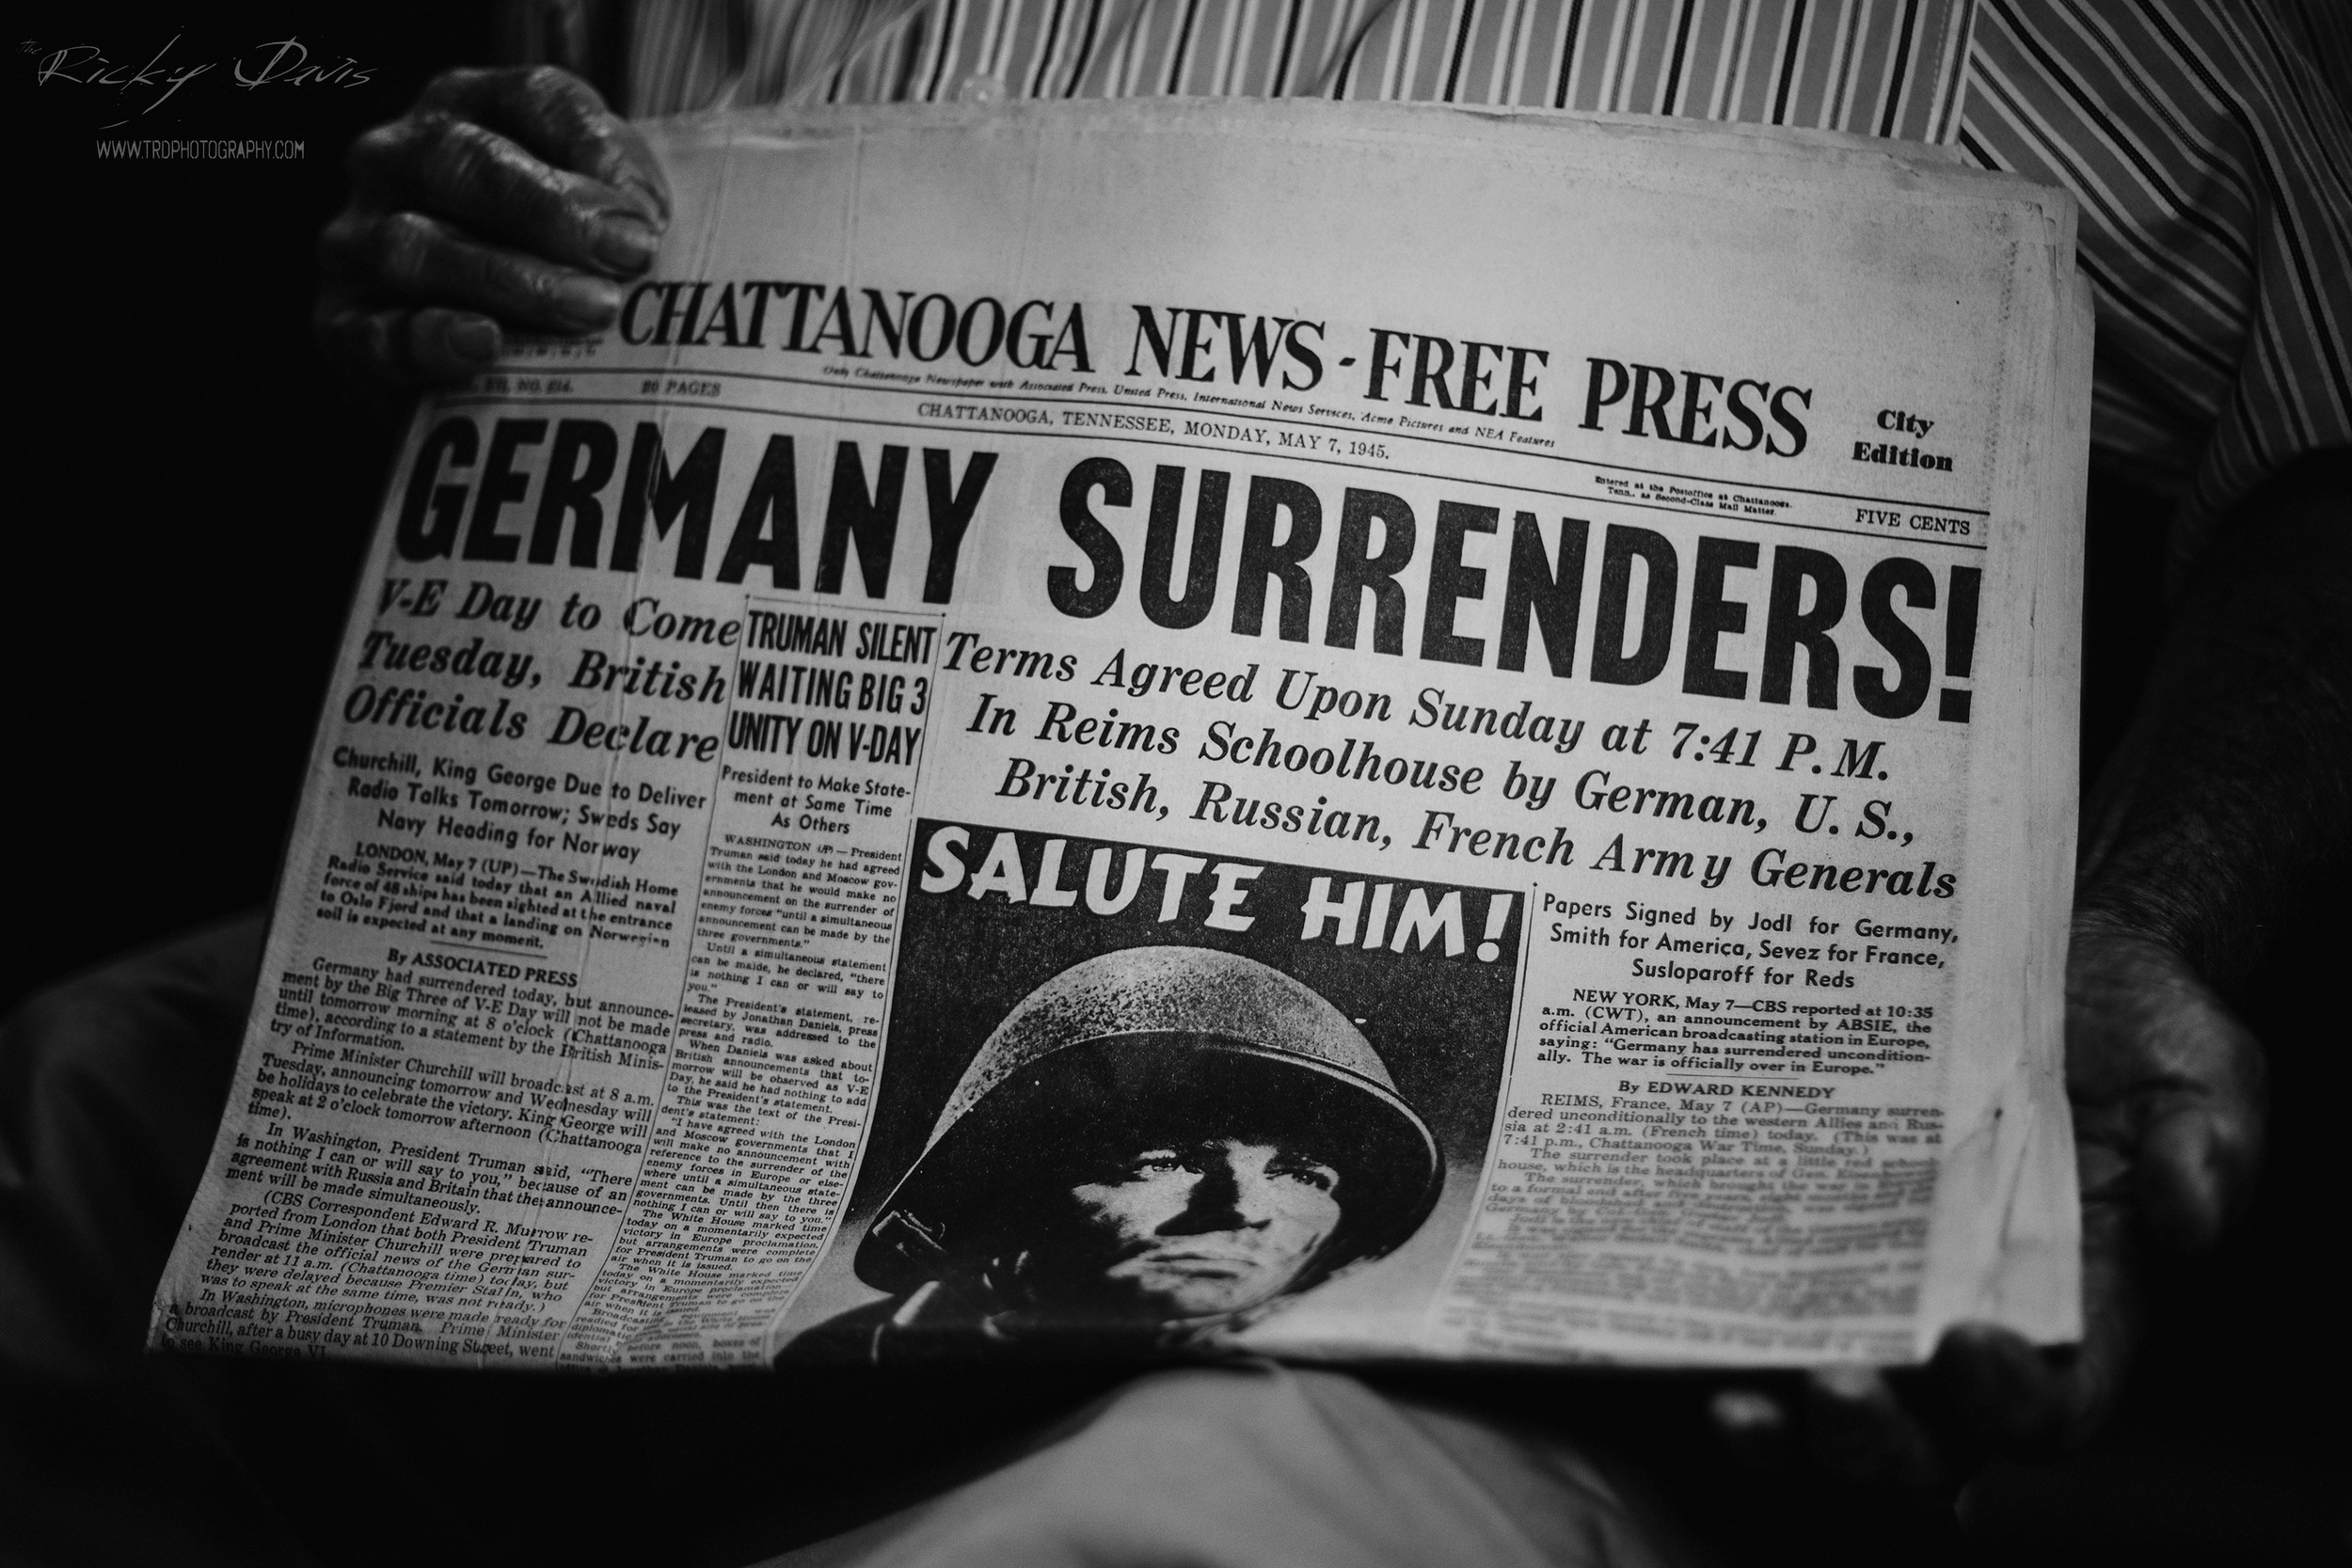 Original Paper from 1945 of the Chattanooga Free Press - Photo by Ricky Davis of TRD Photography - Canon 6D